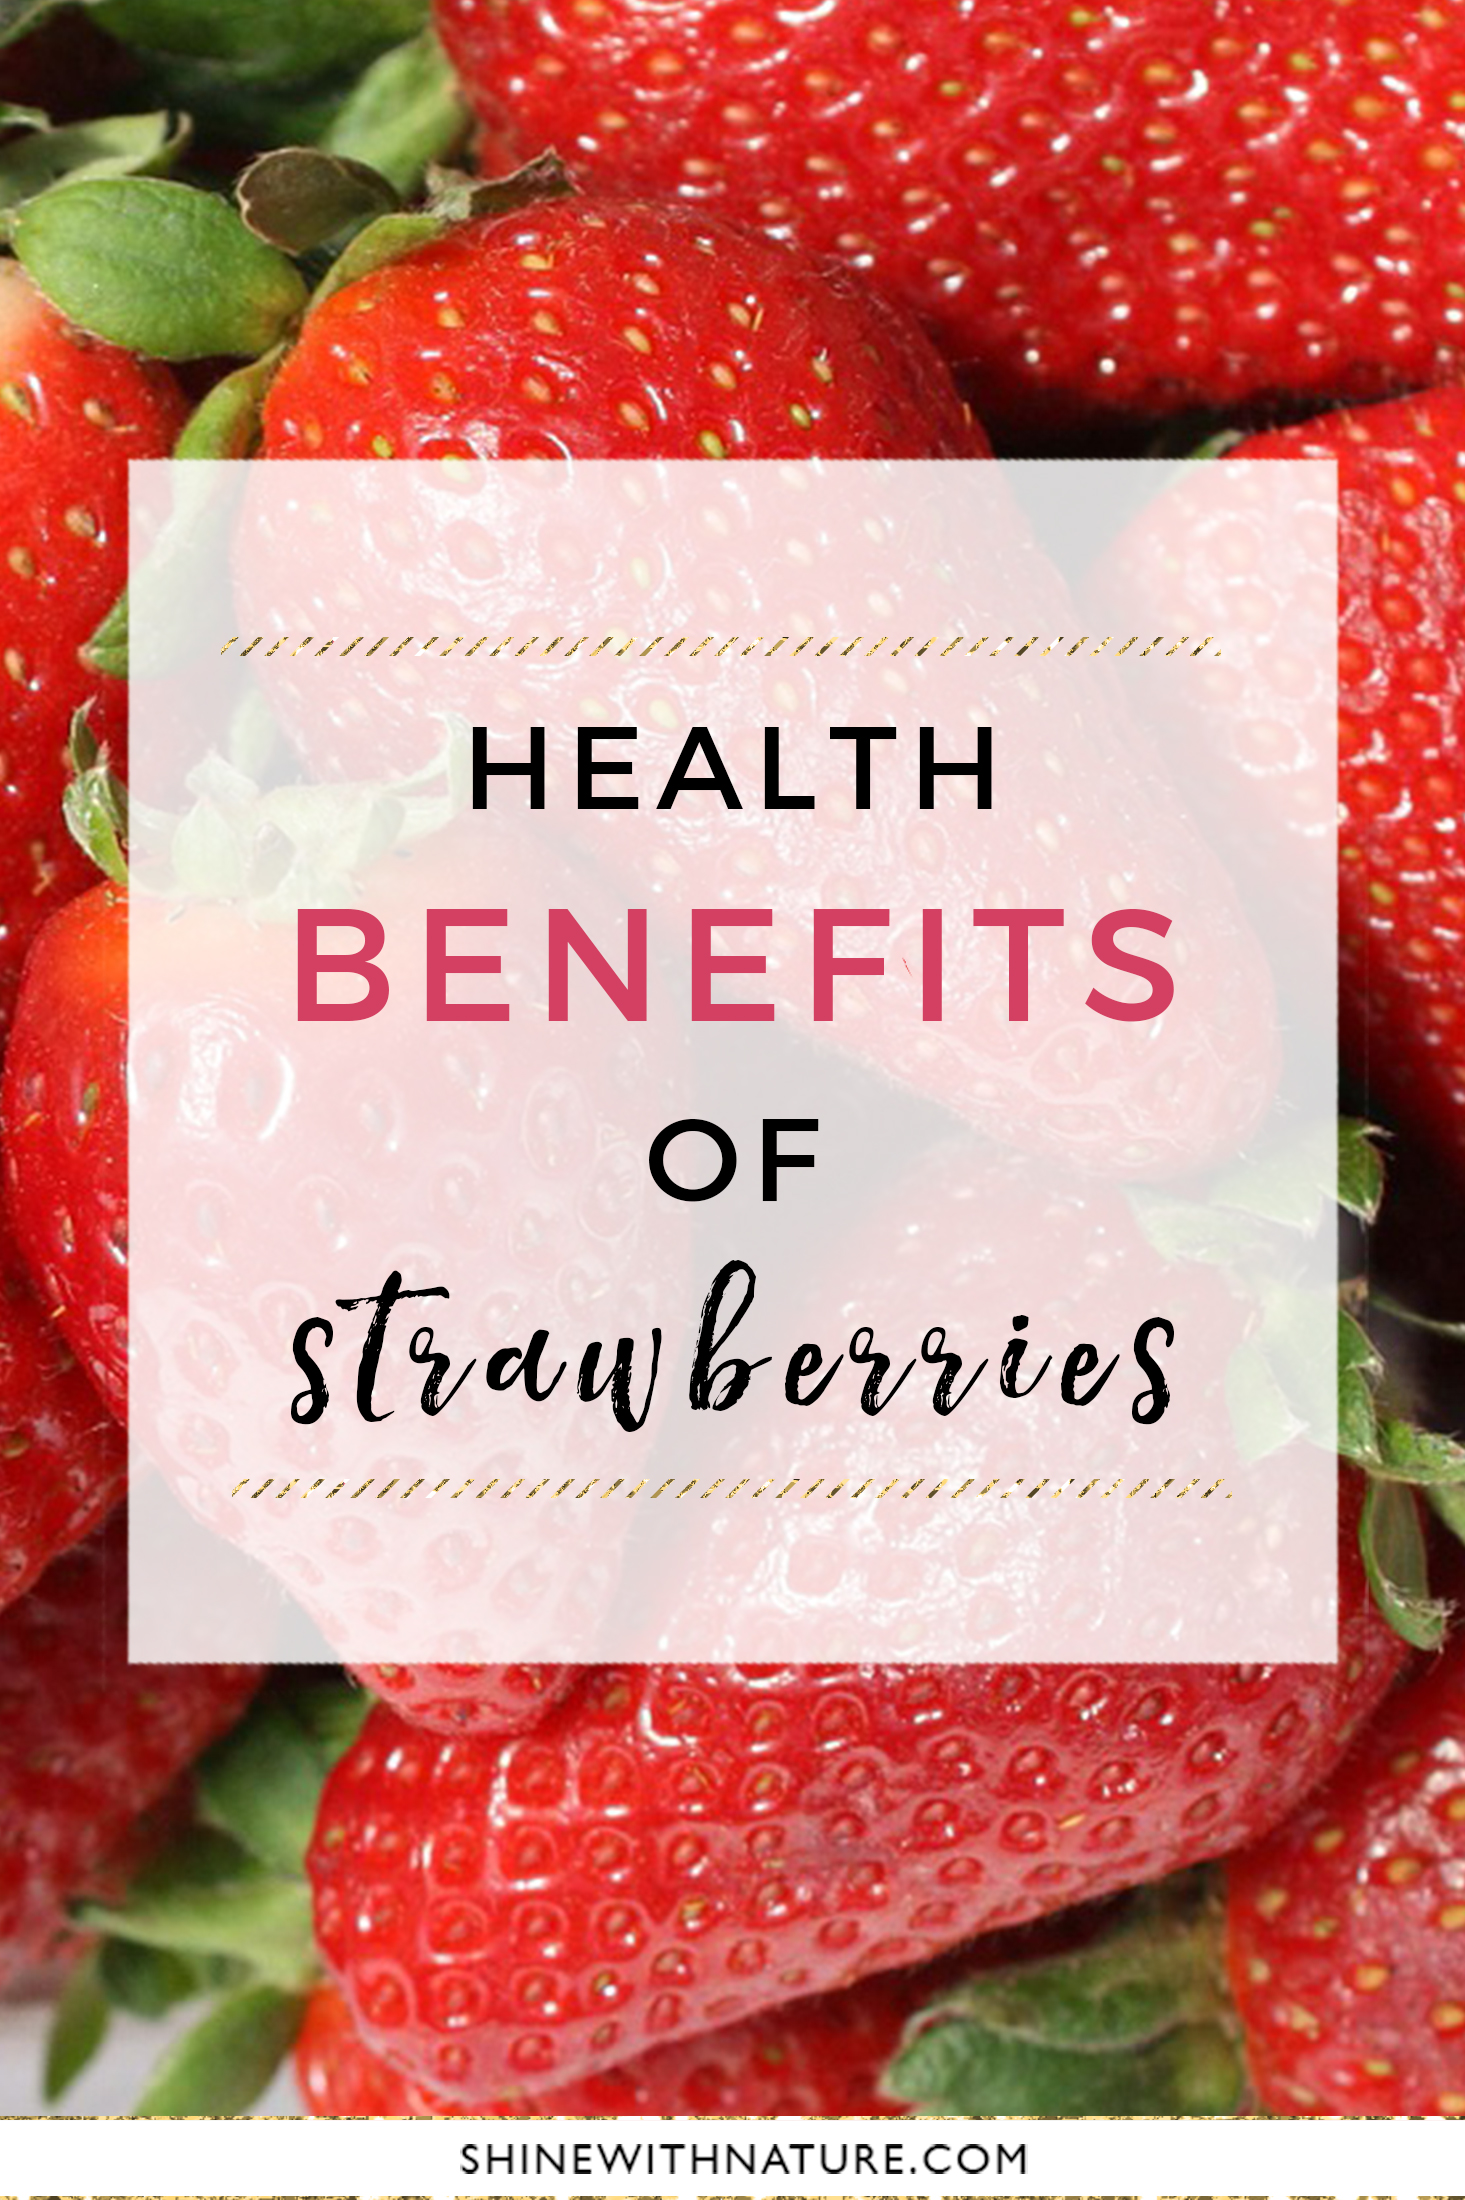 Strawberries The Real Superfood Shine With Nature